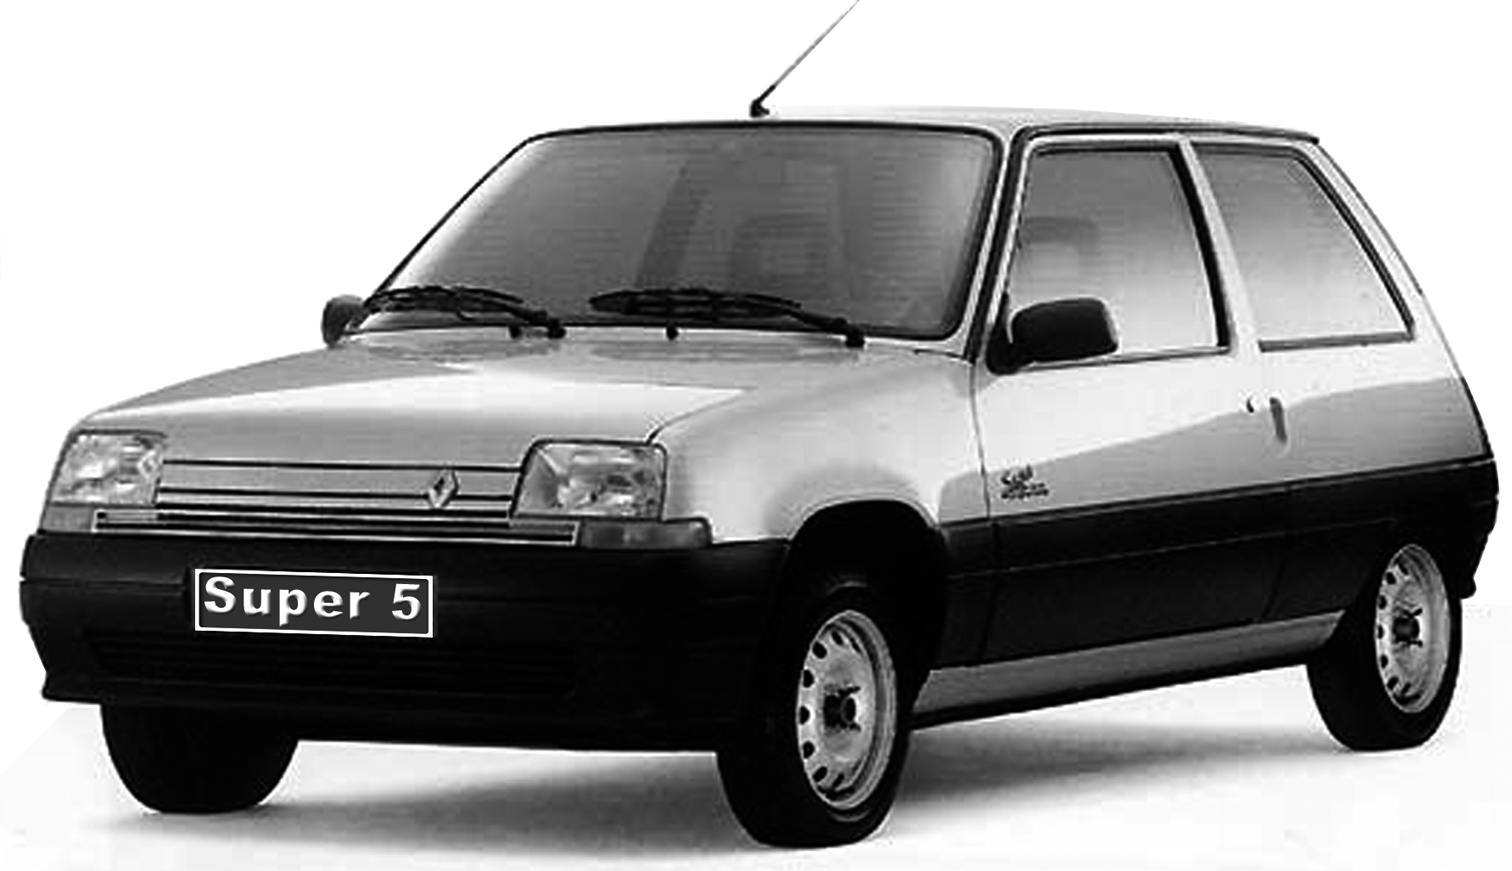 1993 renault super5 pictures information and specs auto. Black Bedroom Furniture Sets. Home Design Ideas